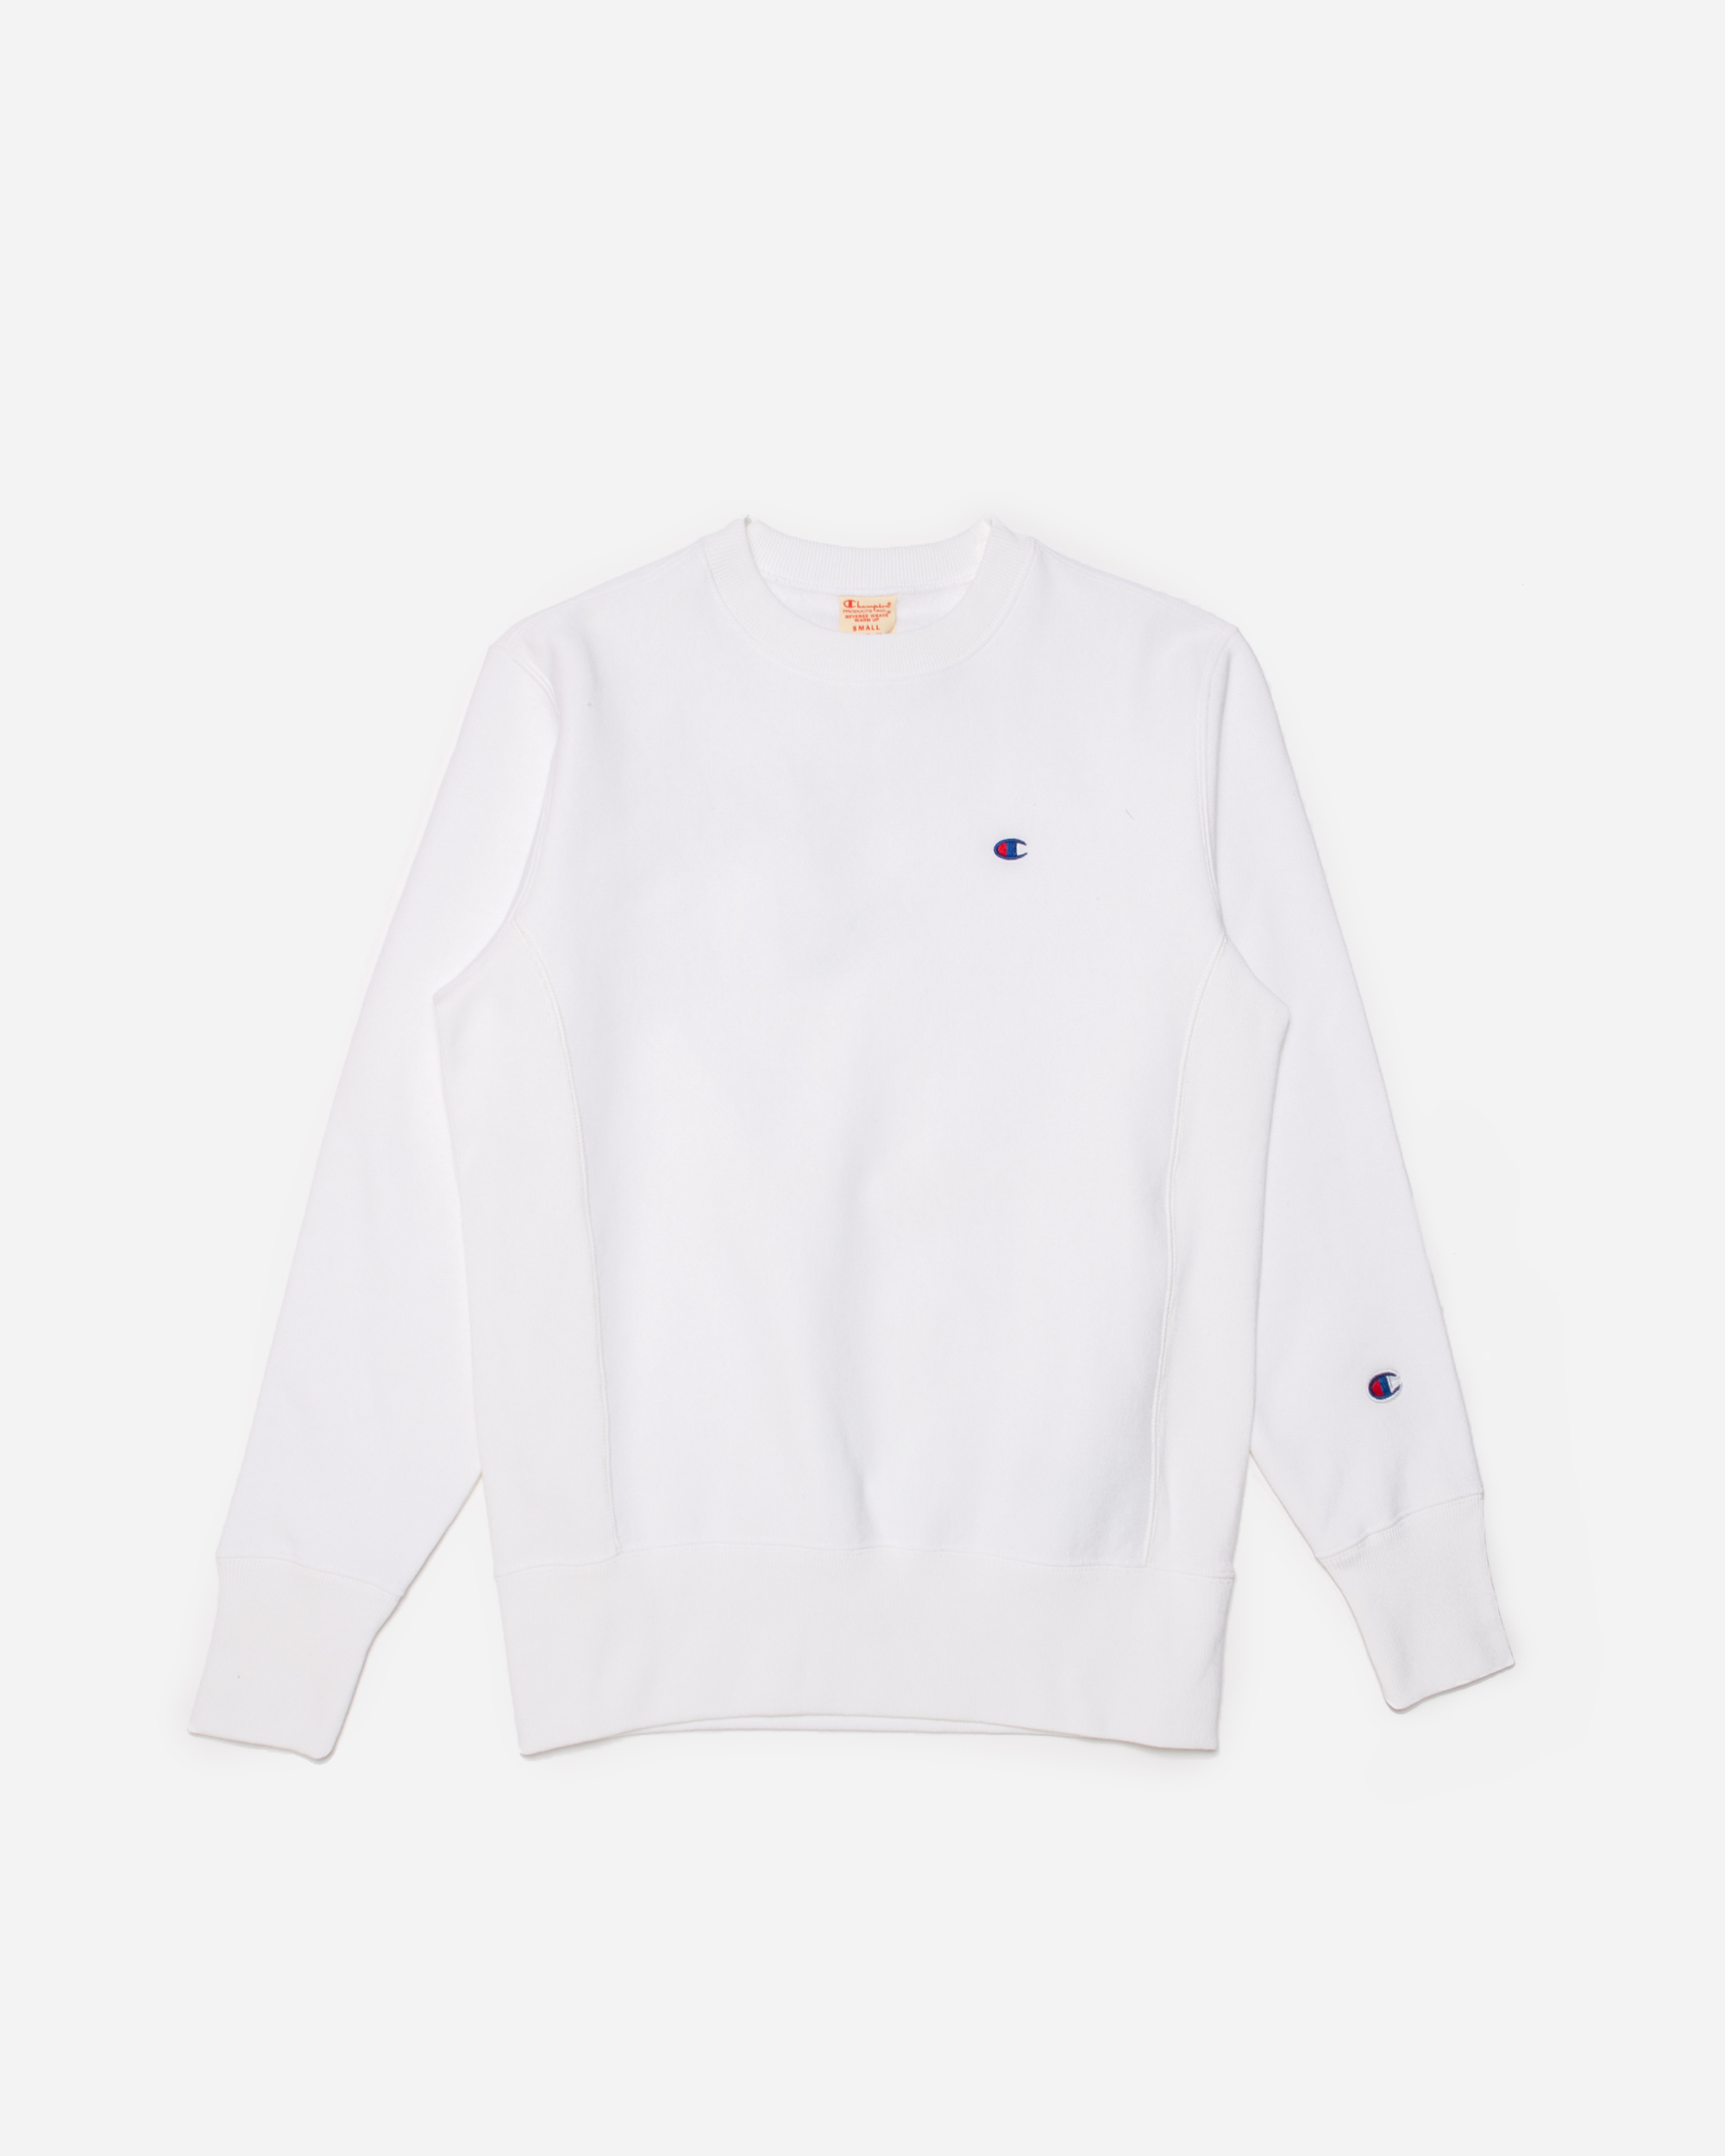 Champion Crewneck Sweatshirt White 215215 Wht Naked